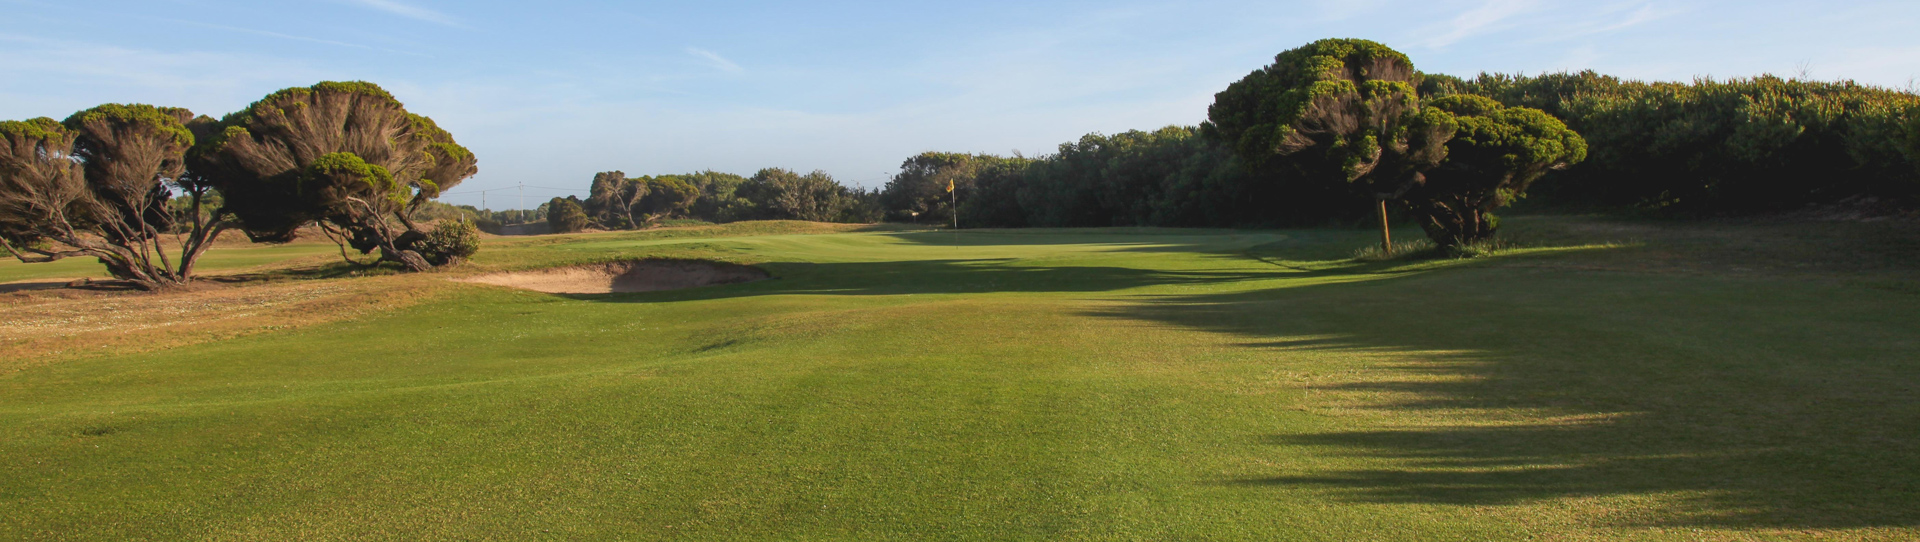 Oporto Golf Club - Photo 2